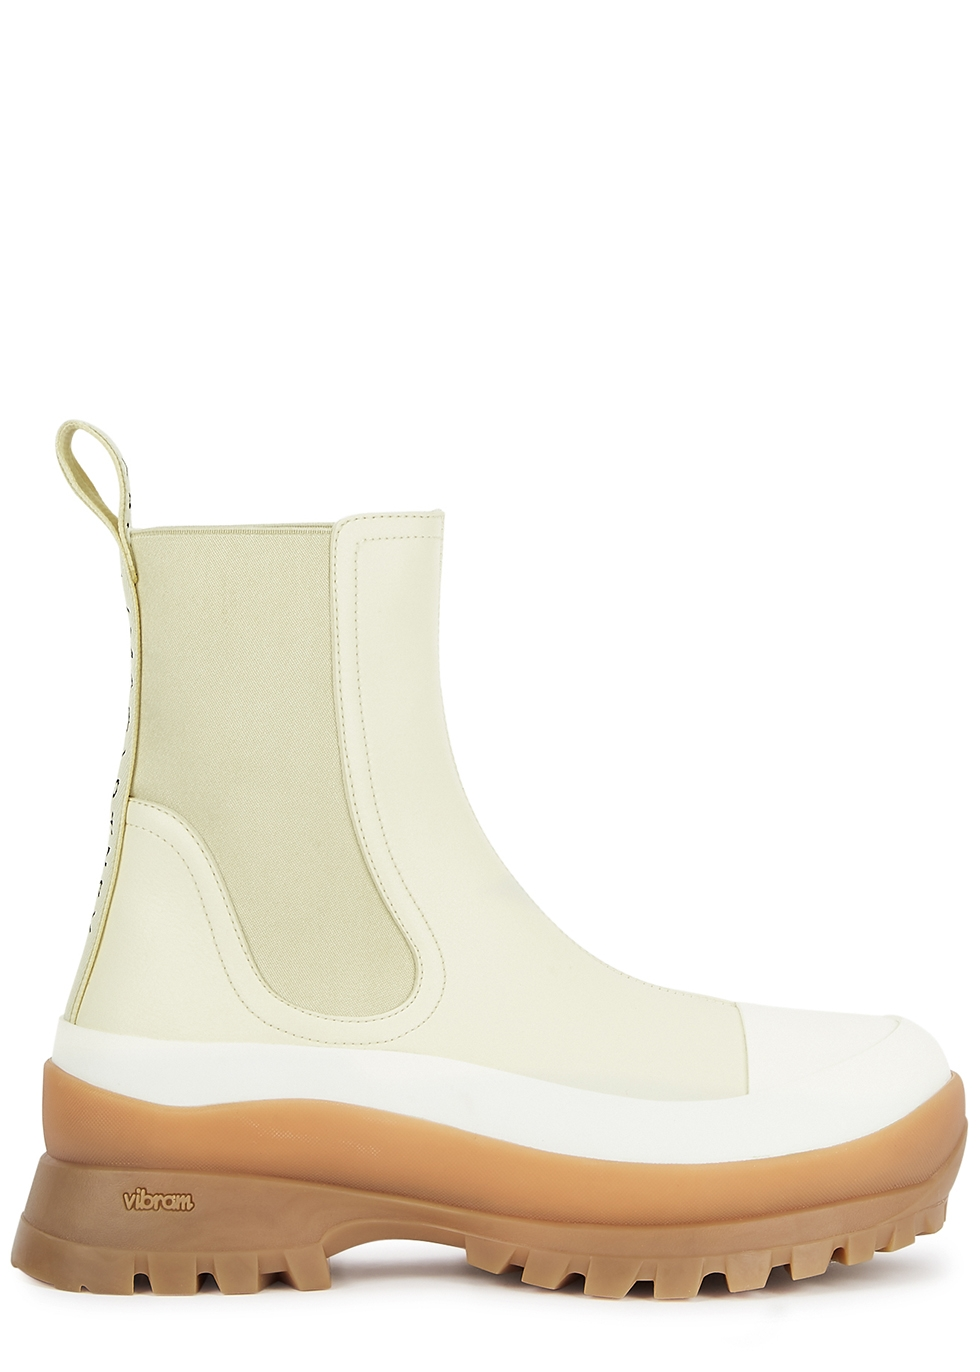 Trace 40 cream faux leather Chelsea boots